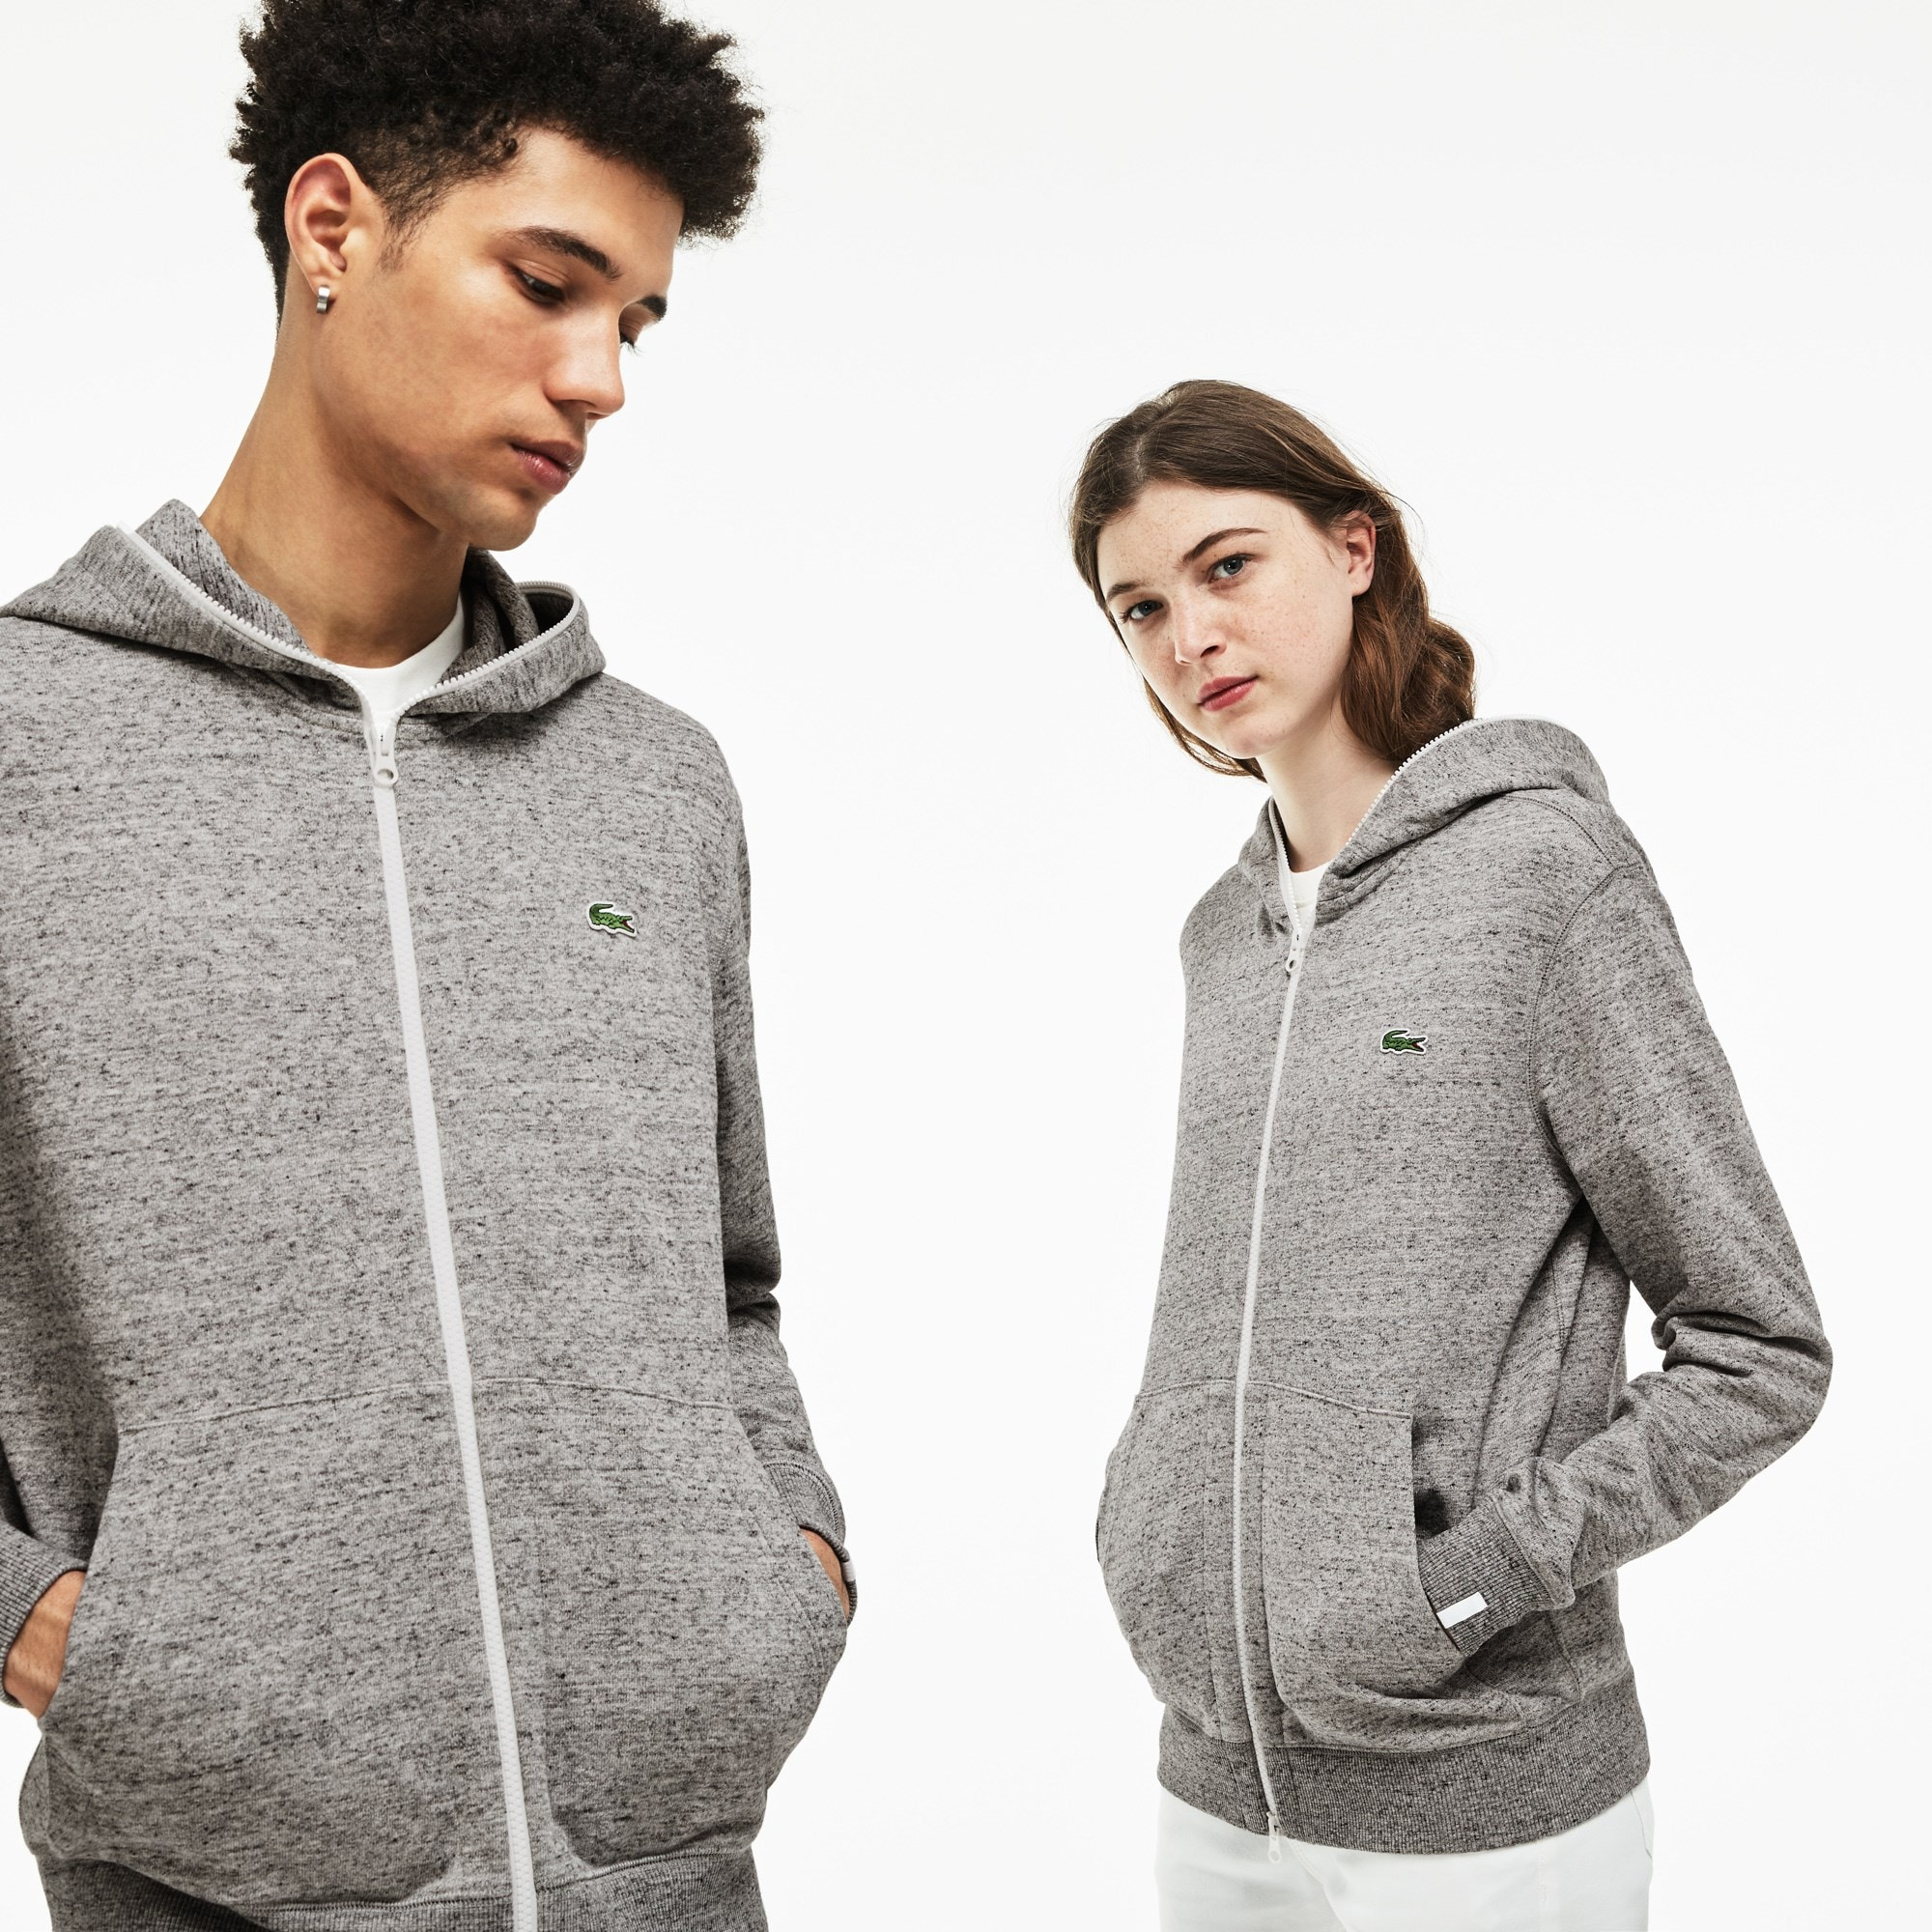 Unisex Lacoste LIVE Hooded Zippered Cotton Sweatshirt